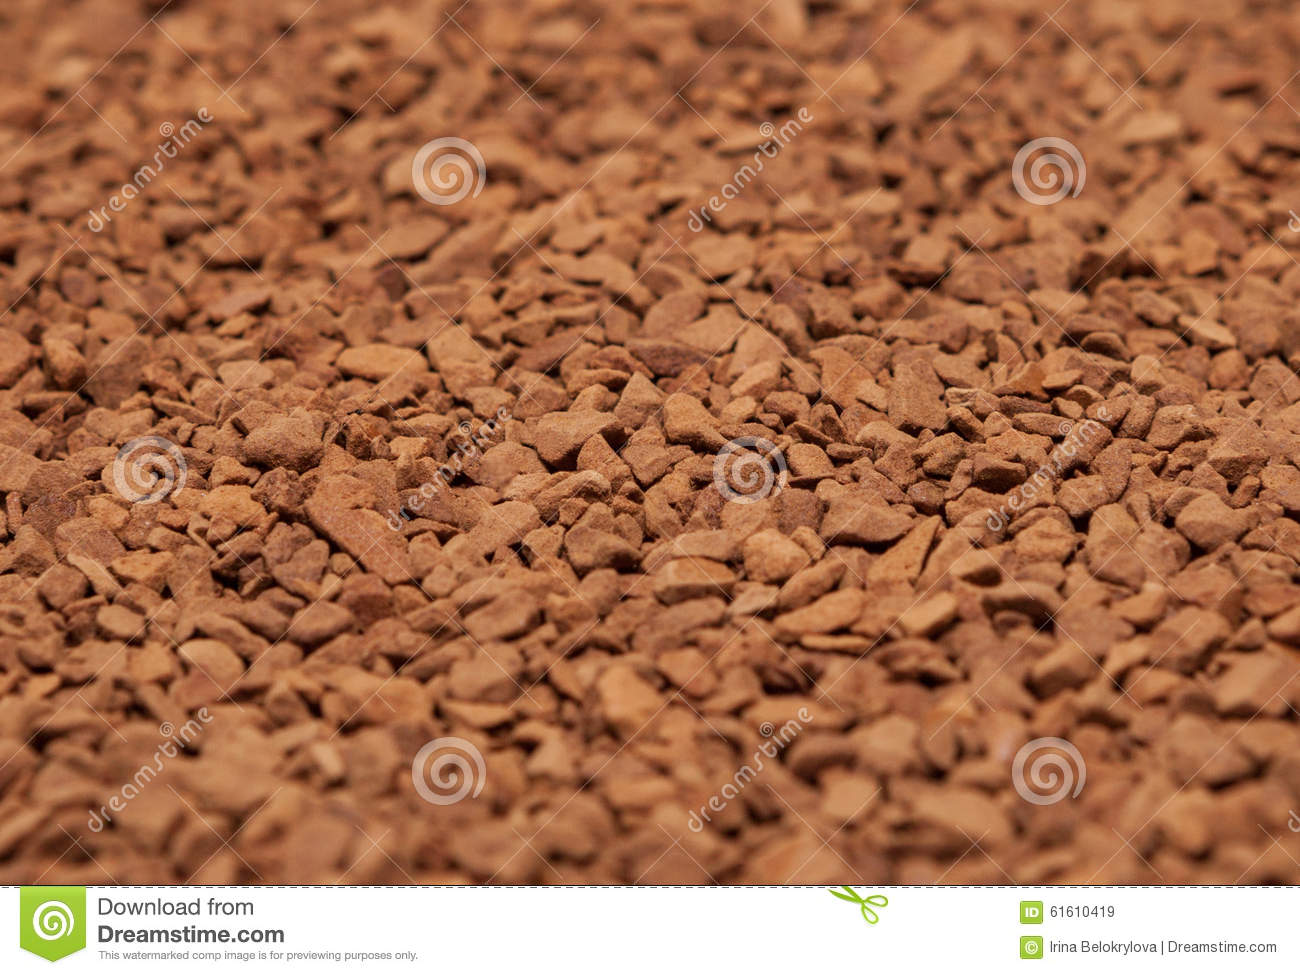 ground coffee stock photo - photo #19